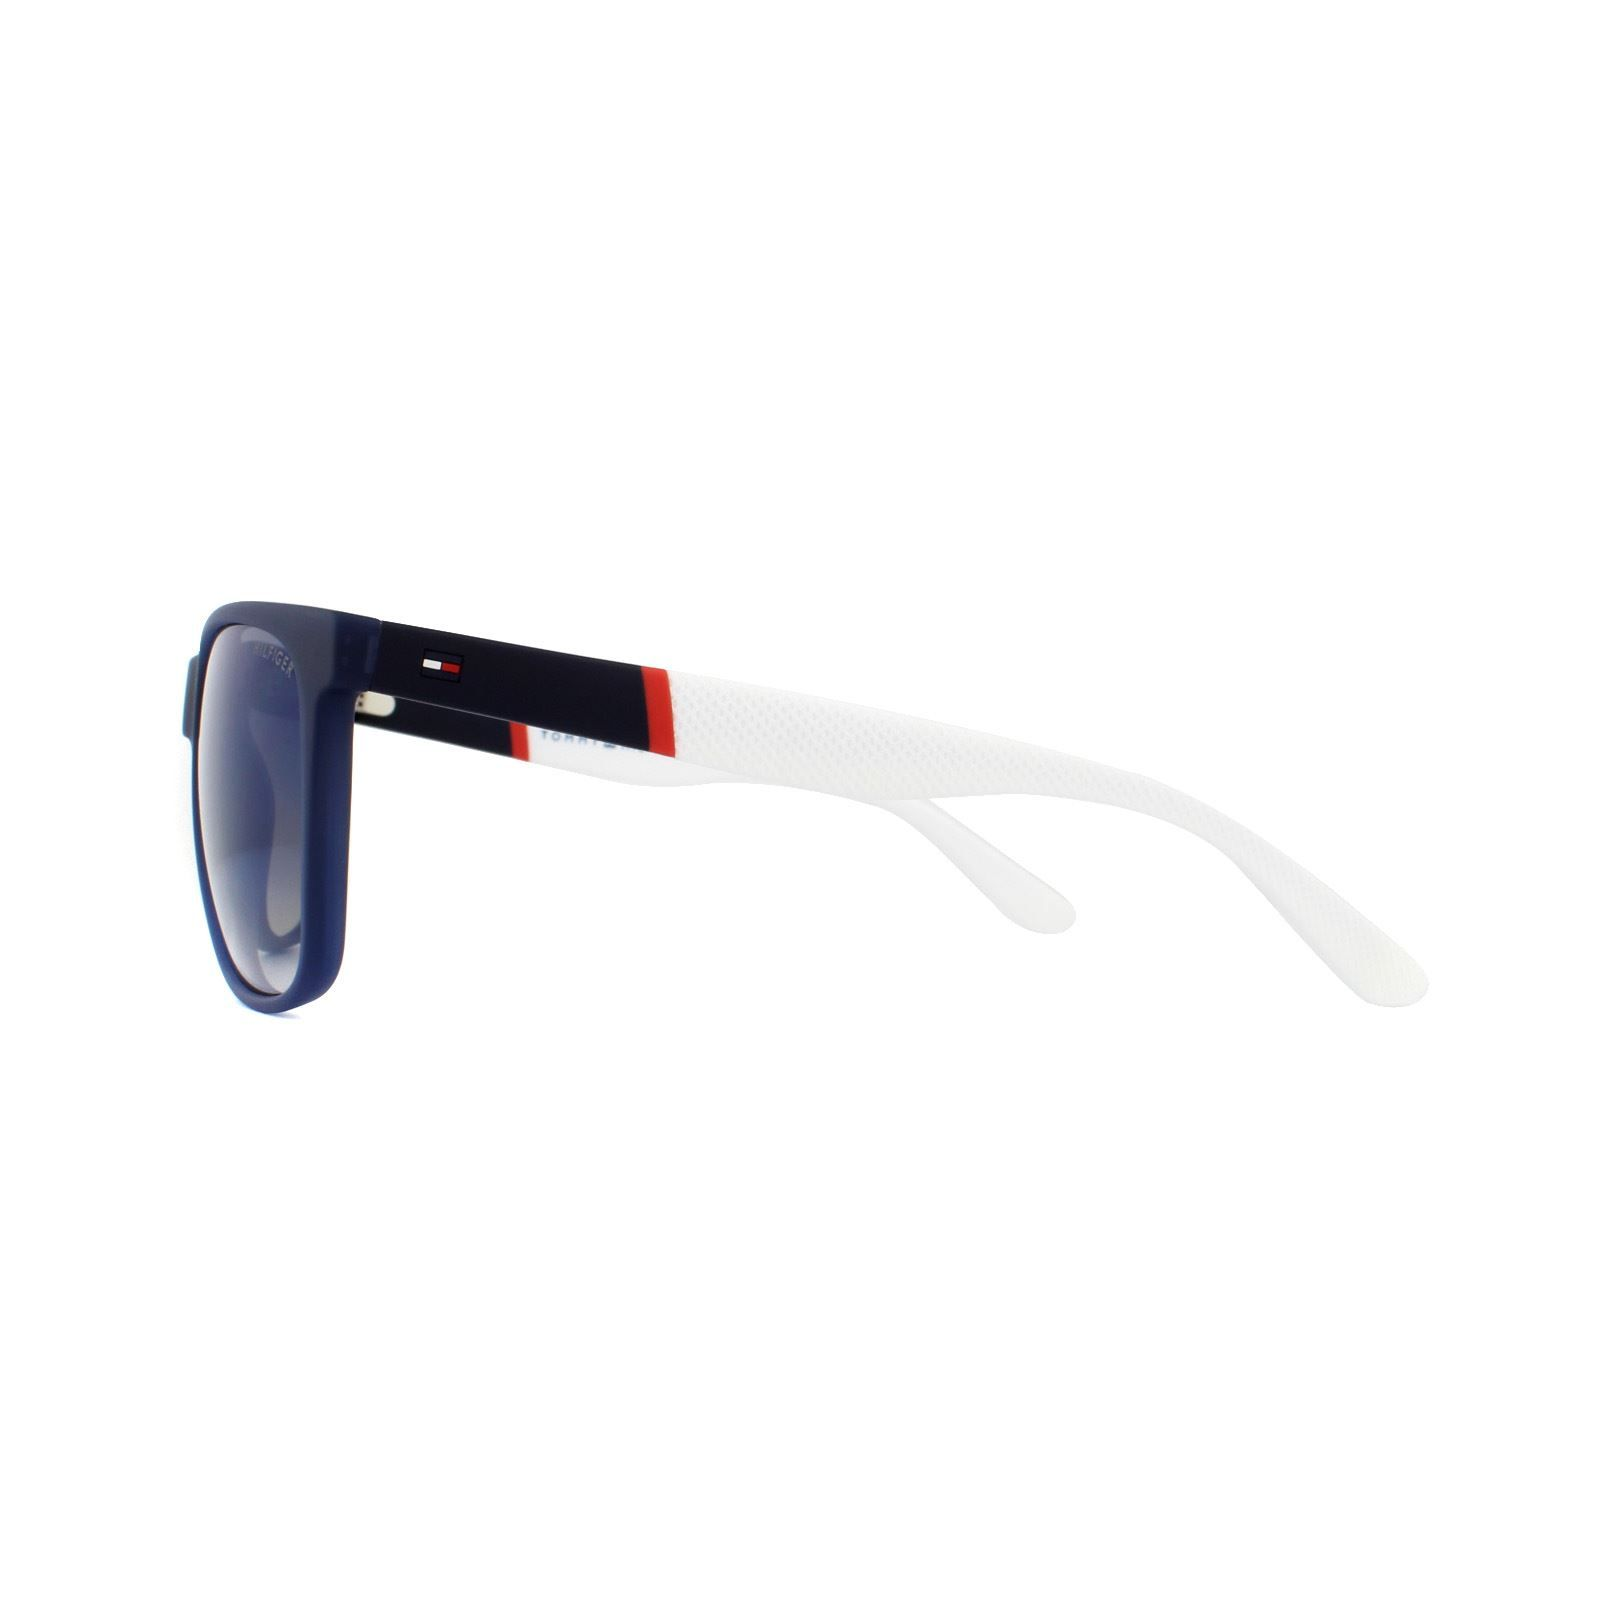 Tommy Hilfiger Sunglasses TH 1281/S FMC DK Blue Red White Blue Sky Flash